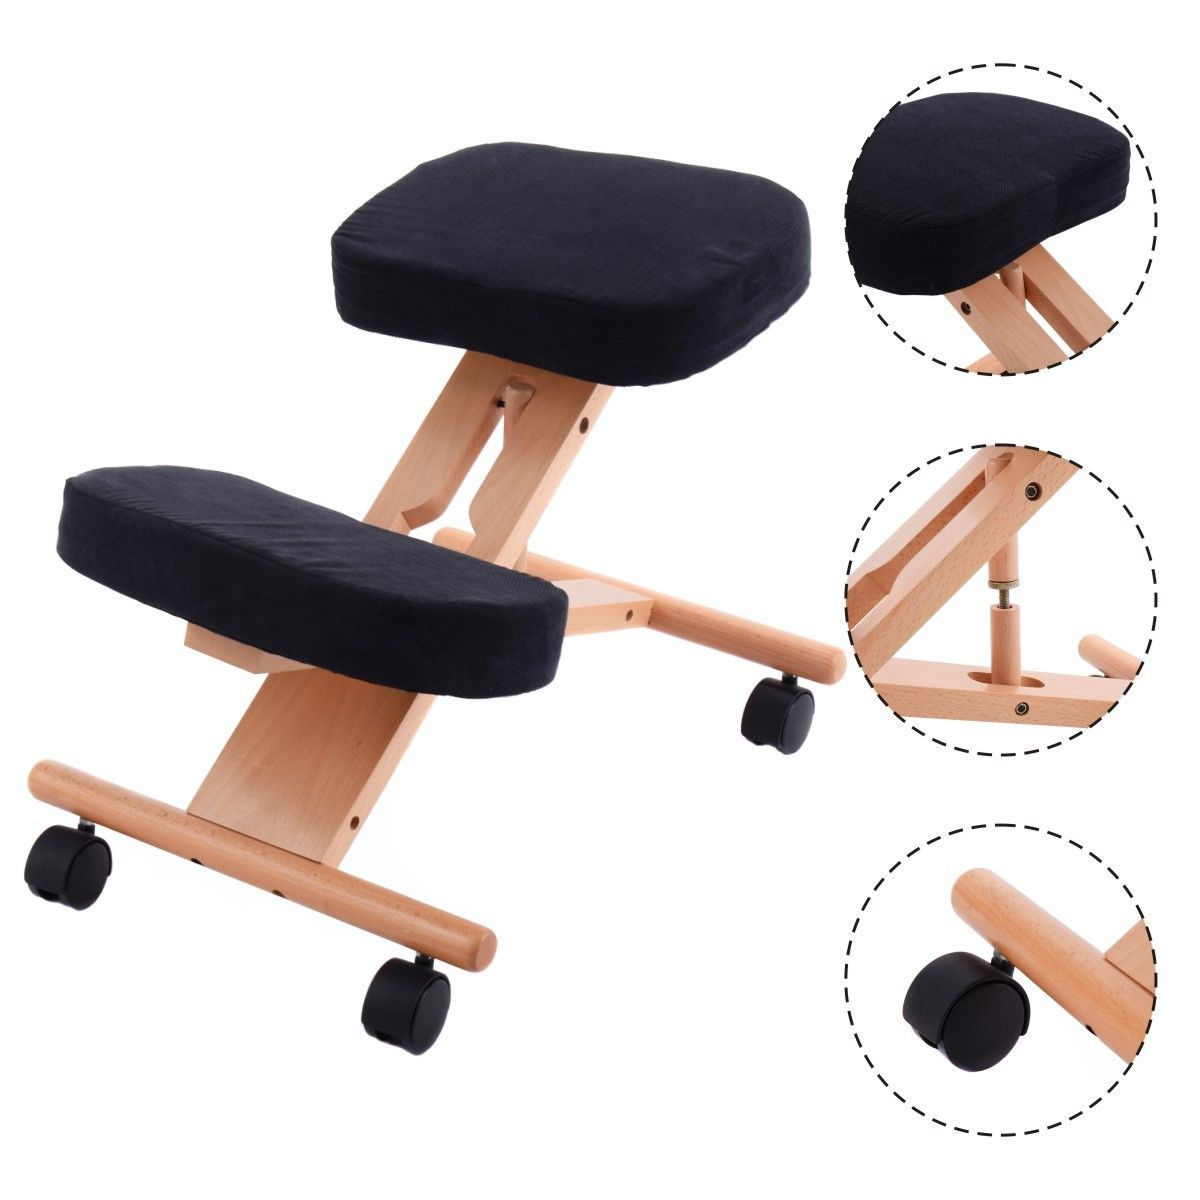 Ergonomic office chair kneeling posture - Ergonomic Office Chair Kneeling Posture 19